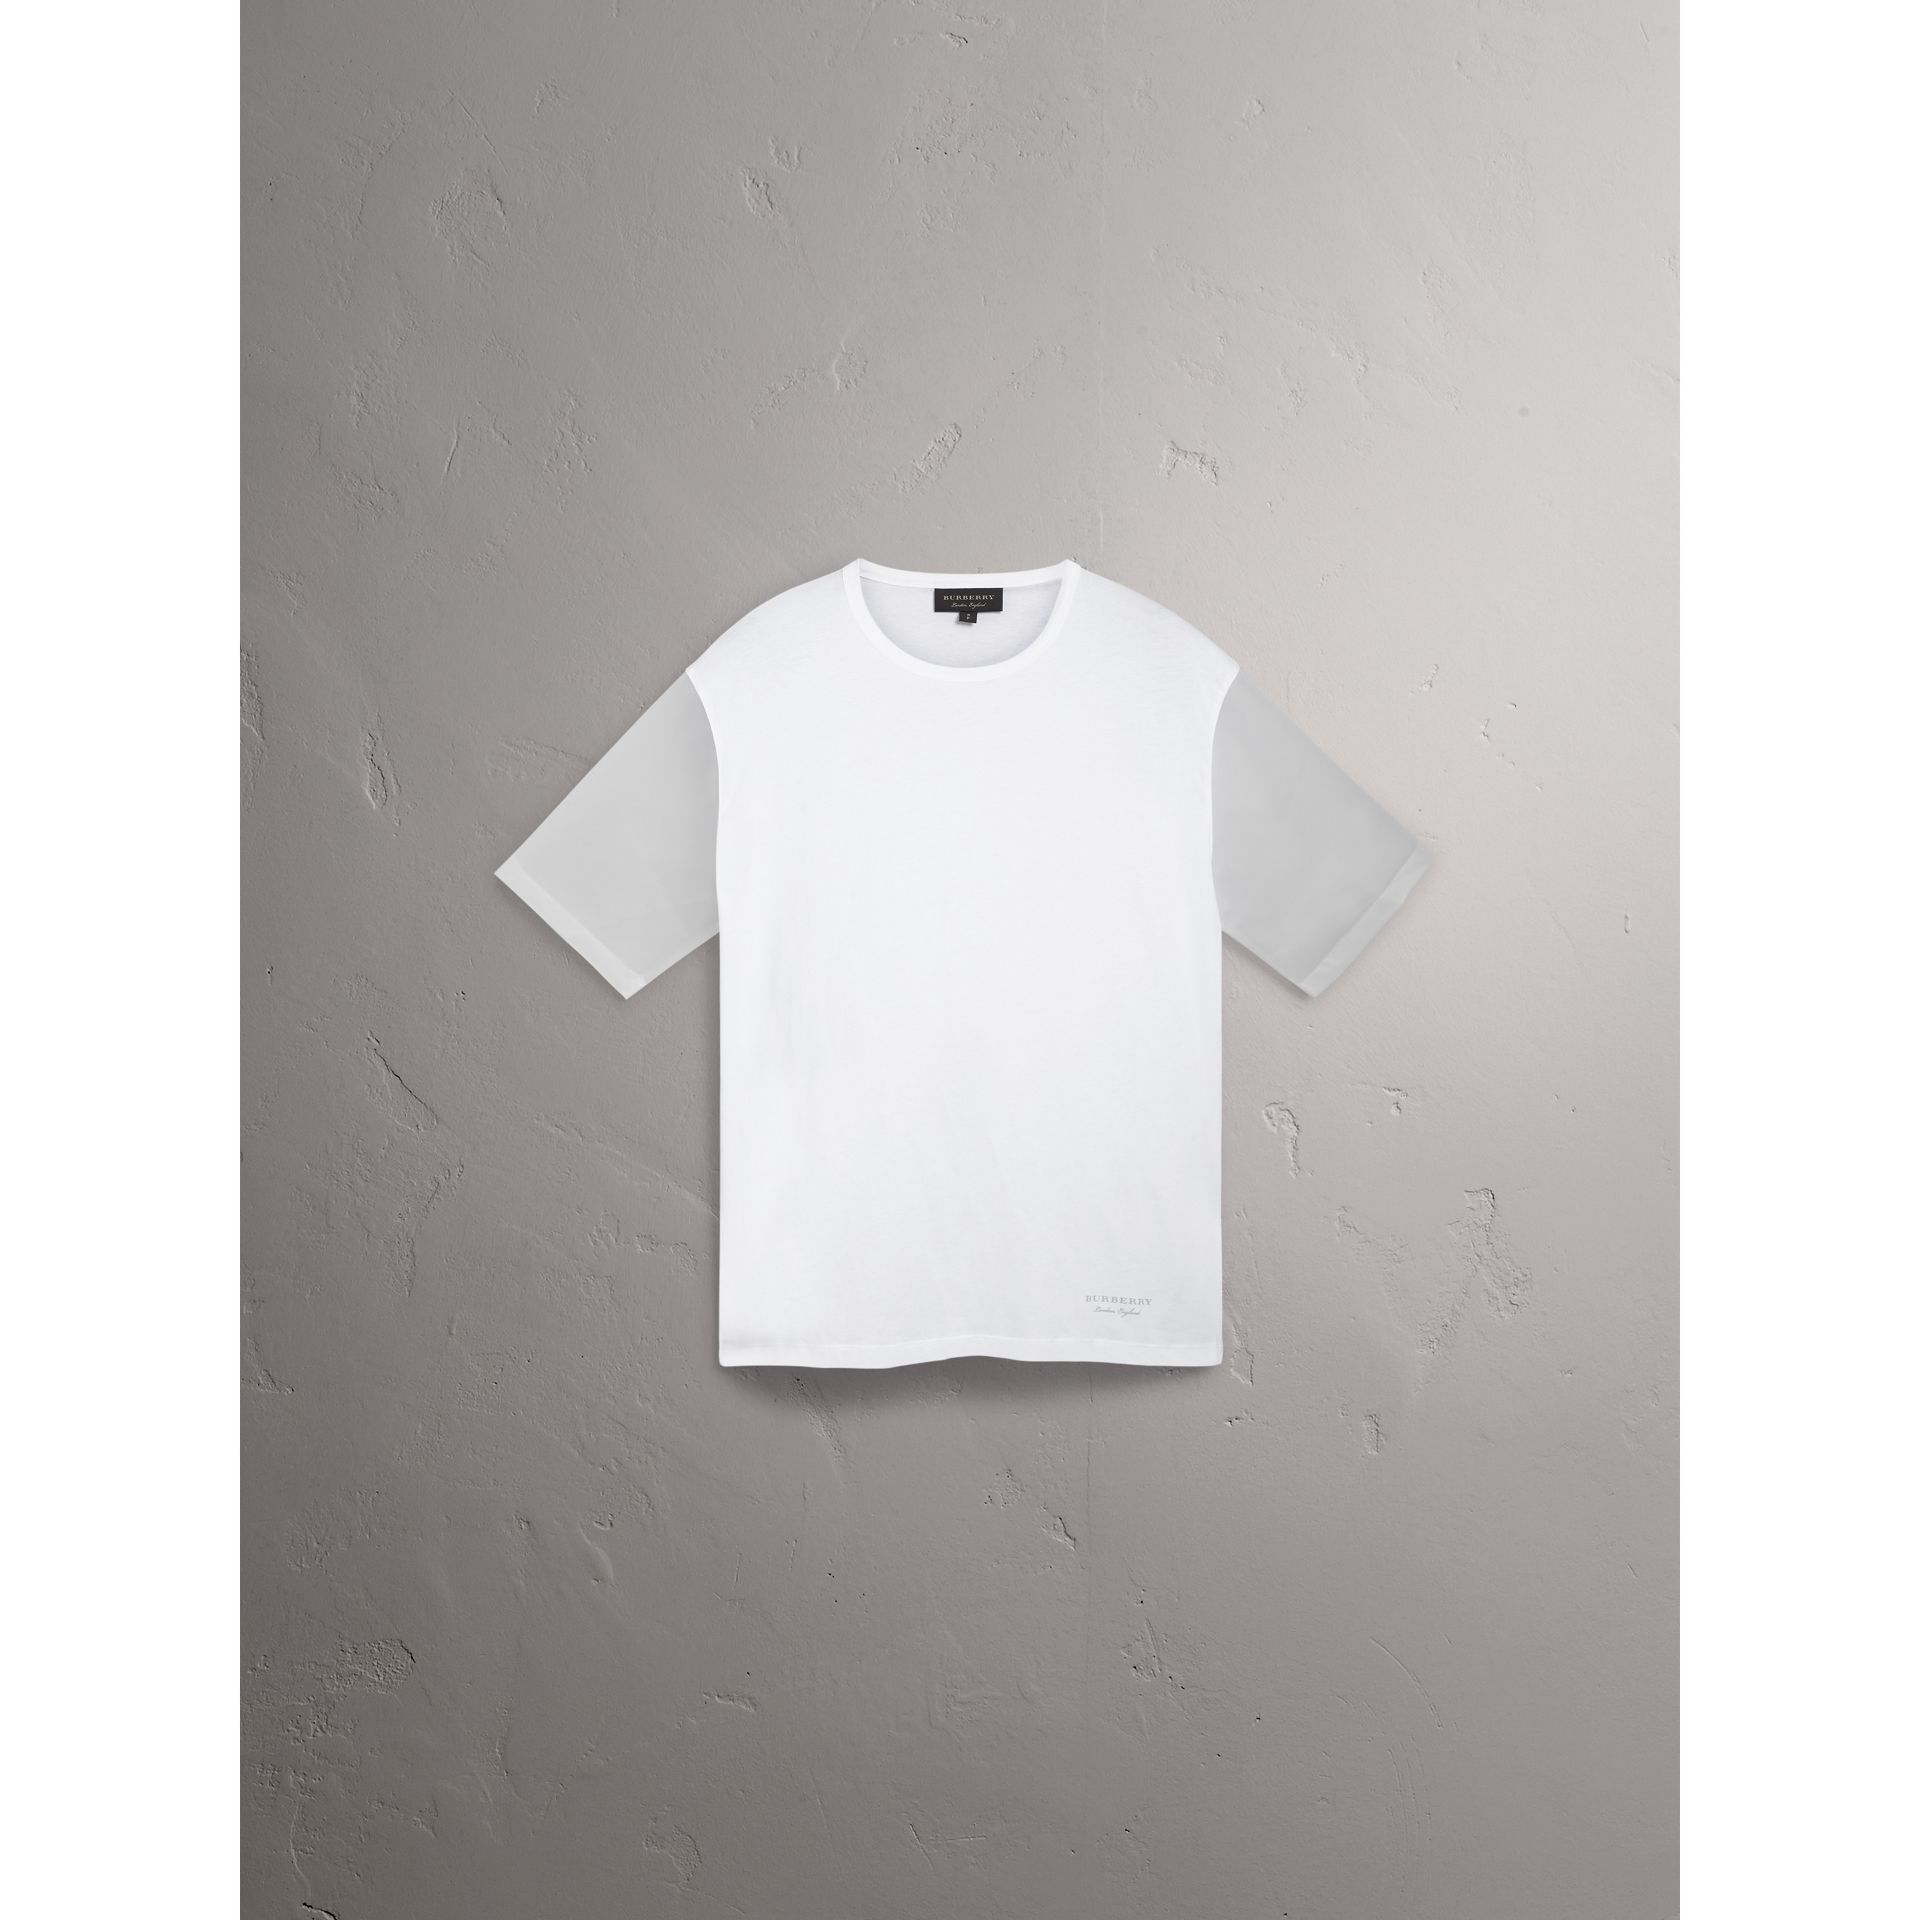 Cotton and Soft-touch Plastic T-shirt in White - Men | Burberry - gallery image 3